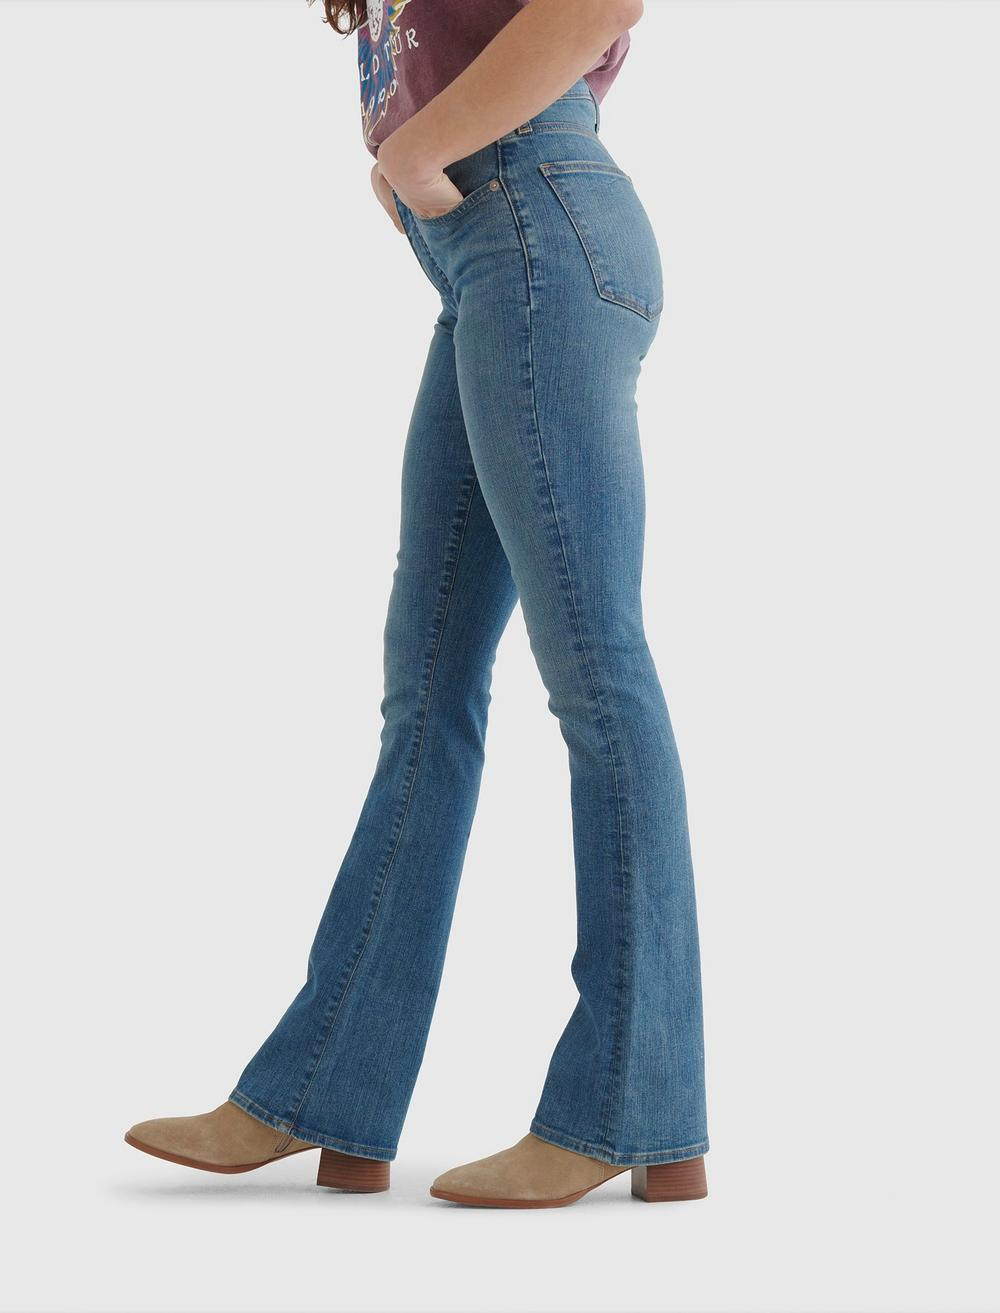 HIGH RISE BIANCA BOOT JEAN, image 4